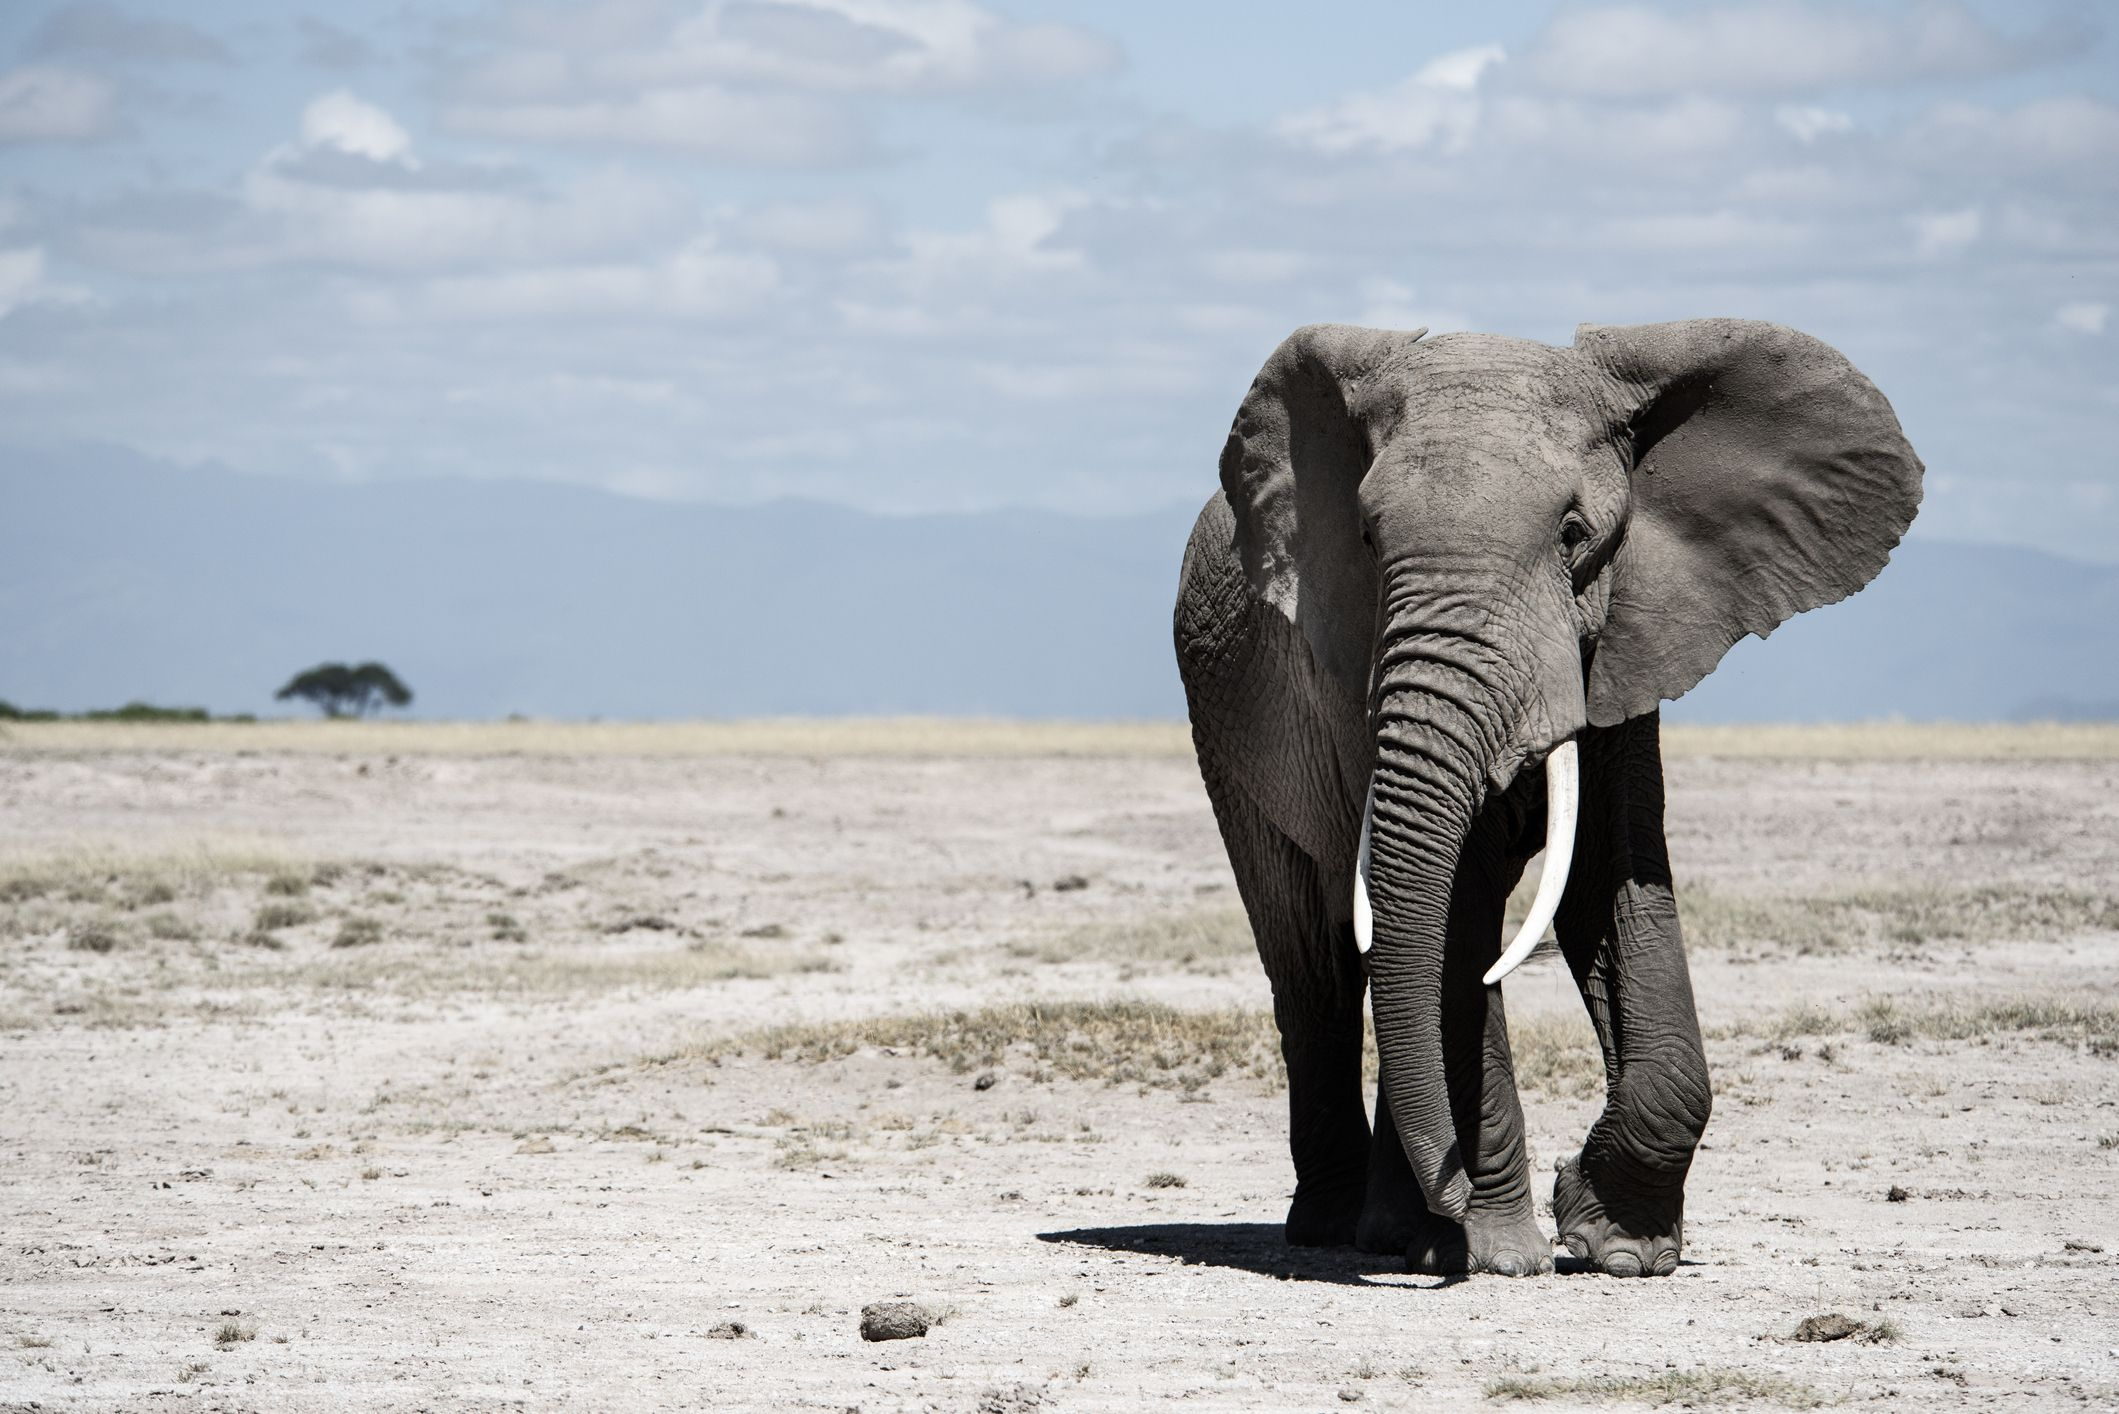 Elephant tusks never stop growing.